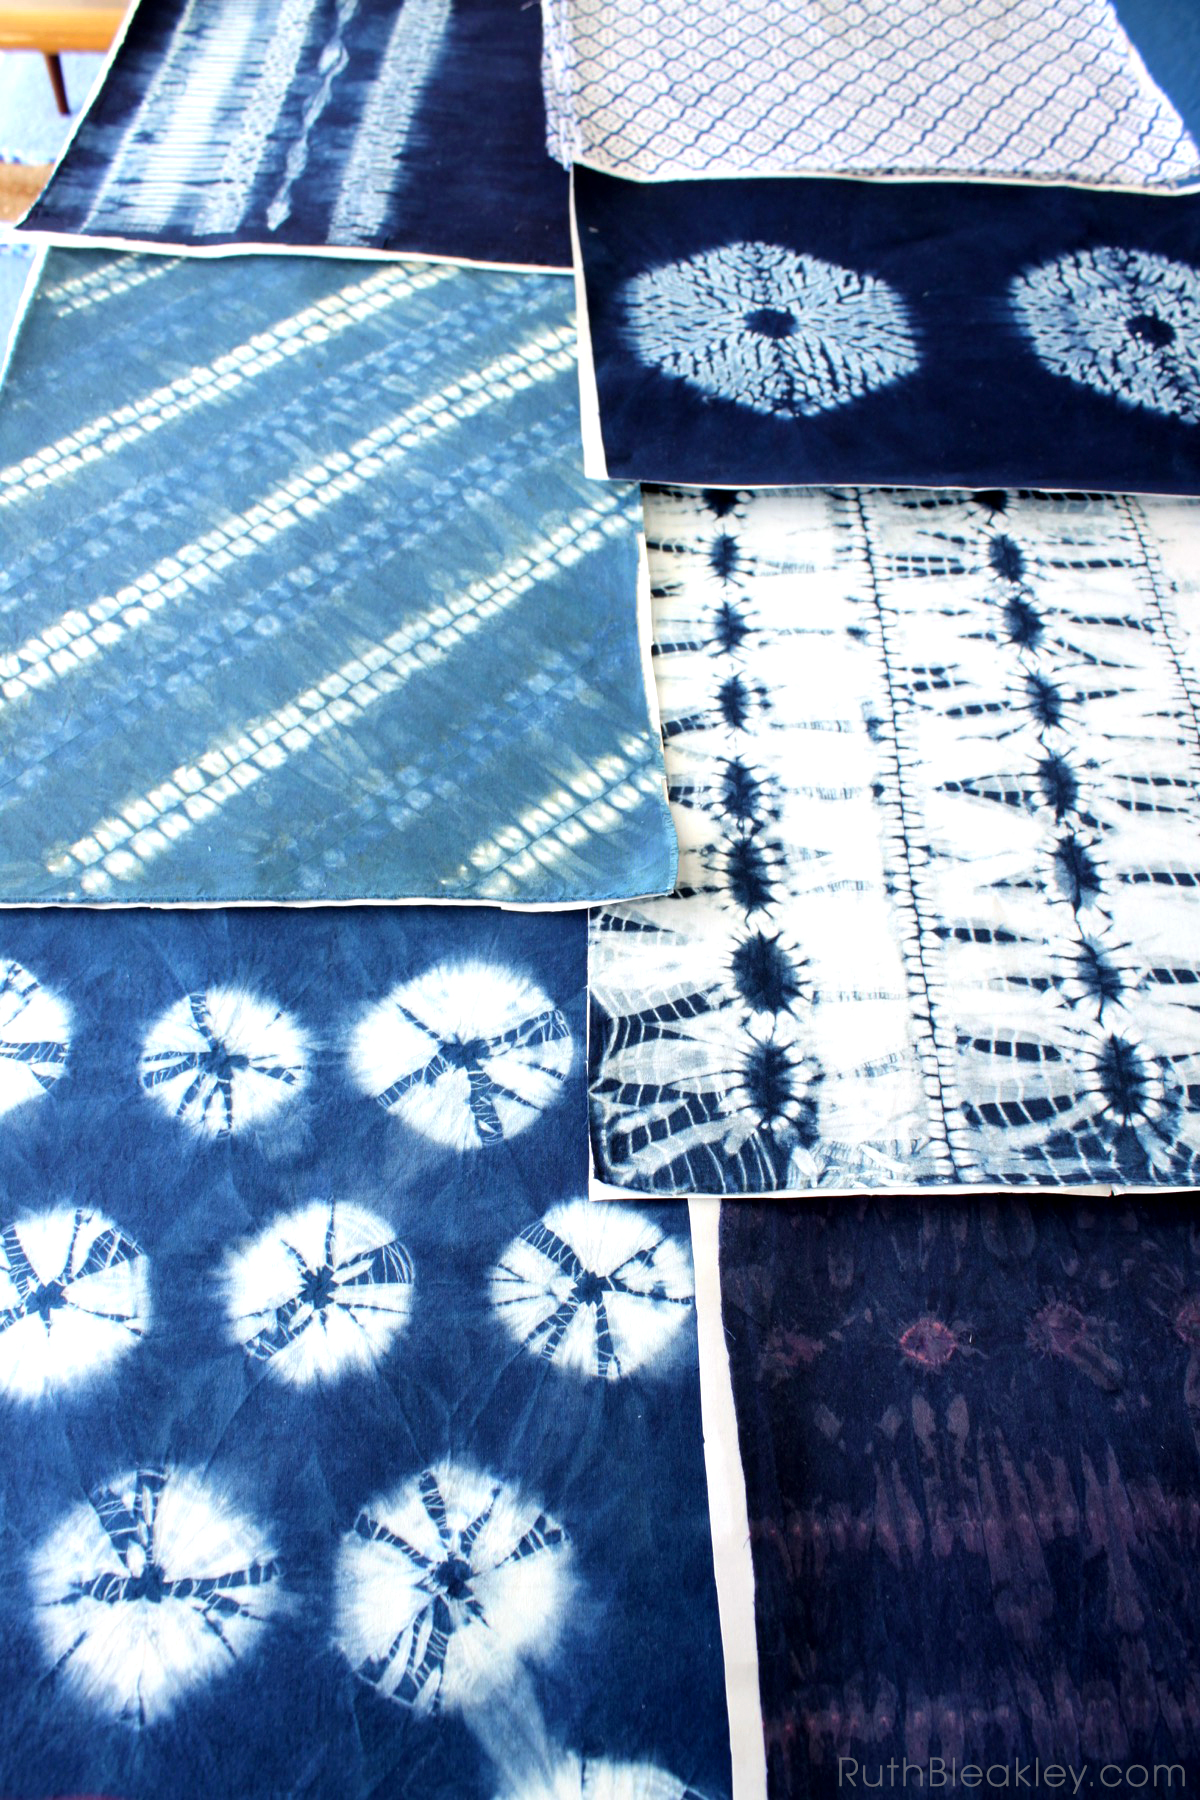 Making Bookcloth from Indigo Shibori Tie Dye - Ruth Bleakley - 4